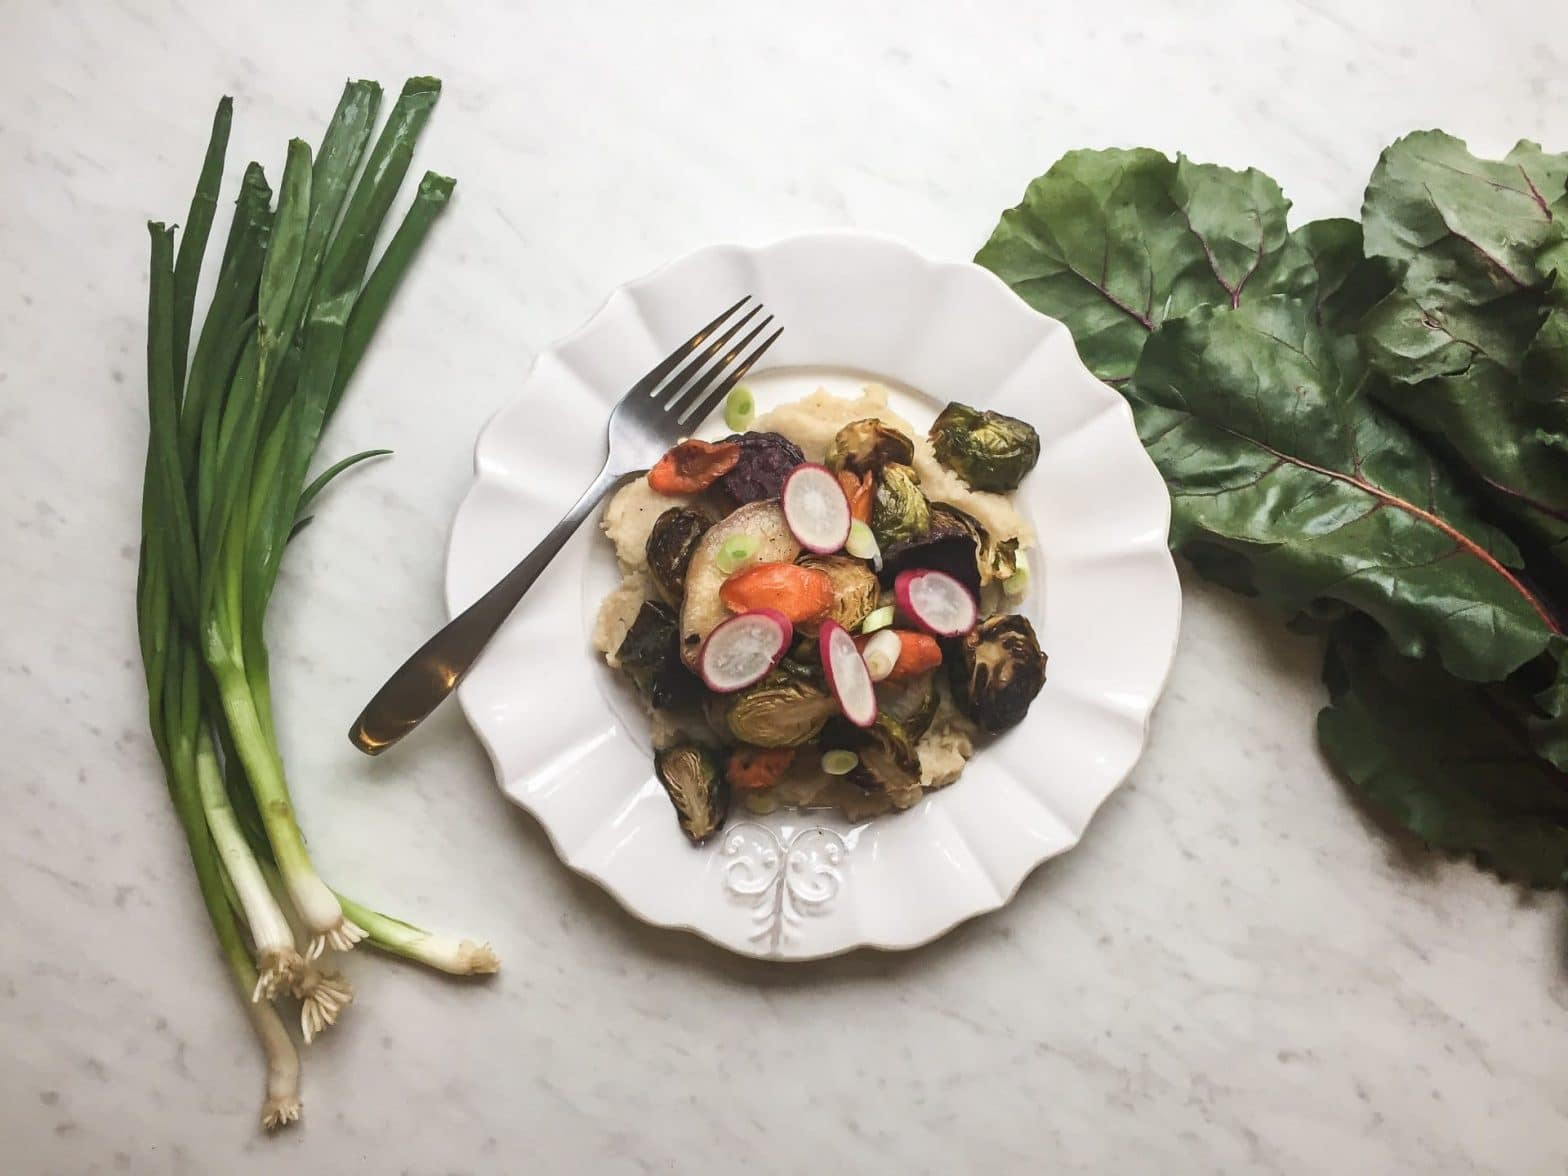 The Most Delicious Paleo Roasted Vegetables with a Caramelized Onion Purée Recipe